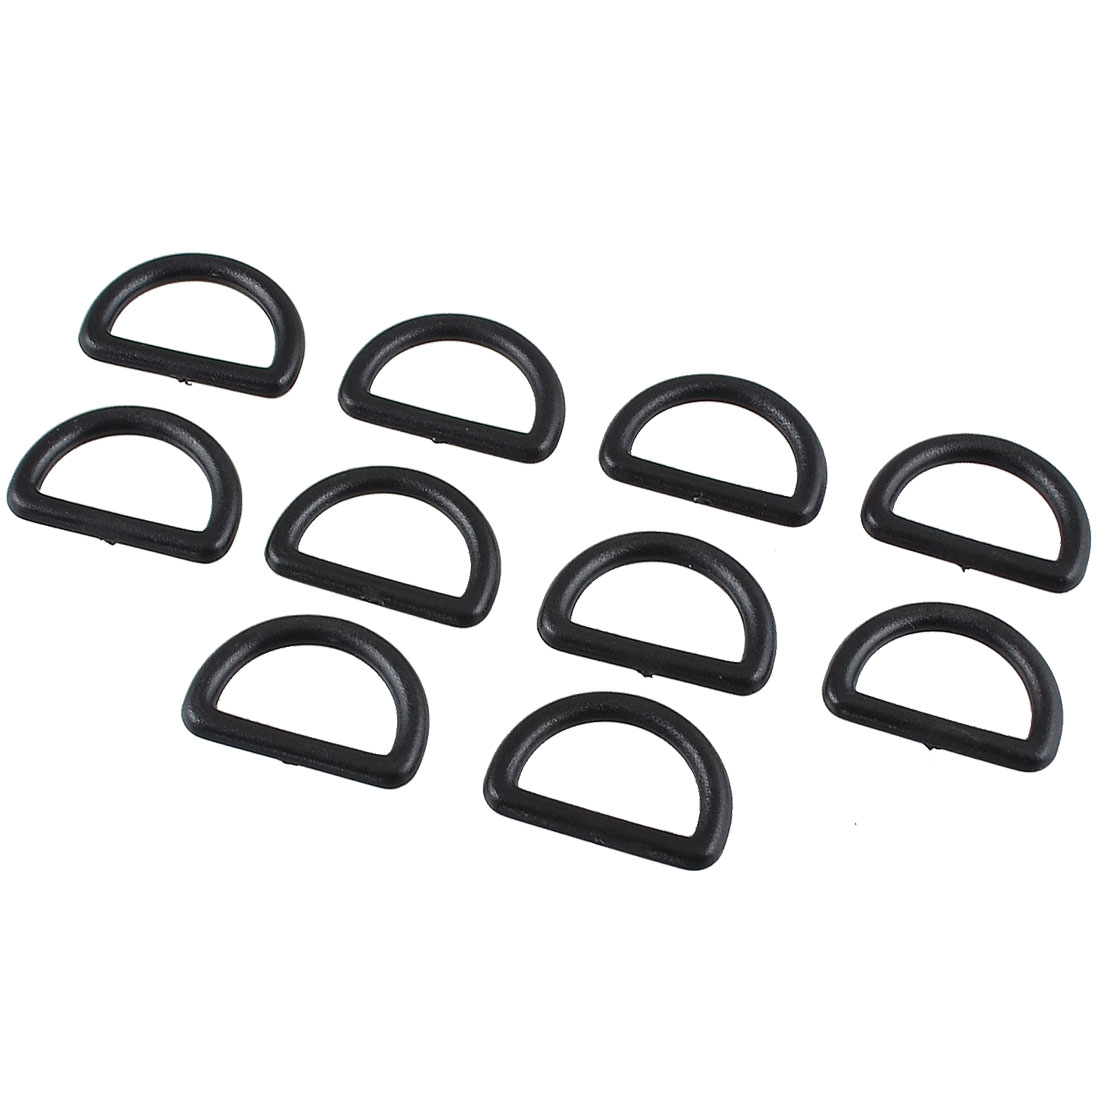 "10pcs Spare Parts Black Replacement D Ring Buckle 0.75"" Strap Width for Handbag"